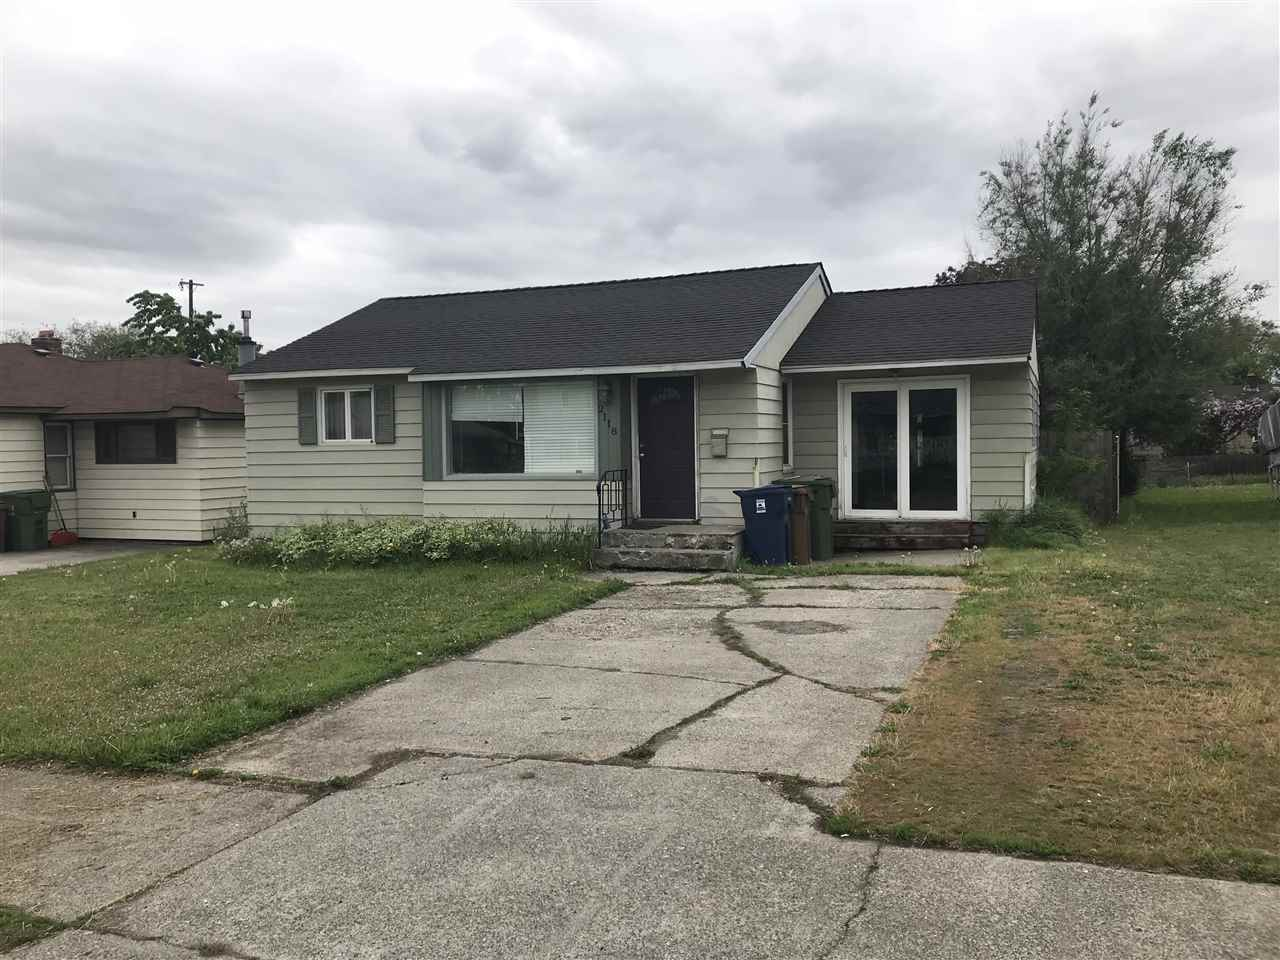 Adorable home very spacious 136 sq ft on the main floor with a sun room and 2 main floor bedrooms the master suite is in the basement.  New Comp roof, newer furnace gas forced air, vinyl windows, gas stove. Fully fenced backyard with alley access... Dont miss this one.